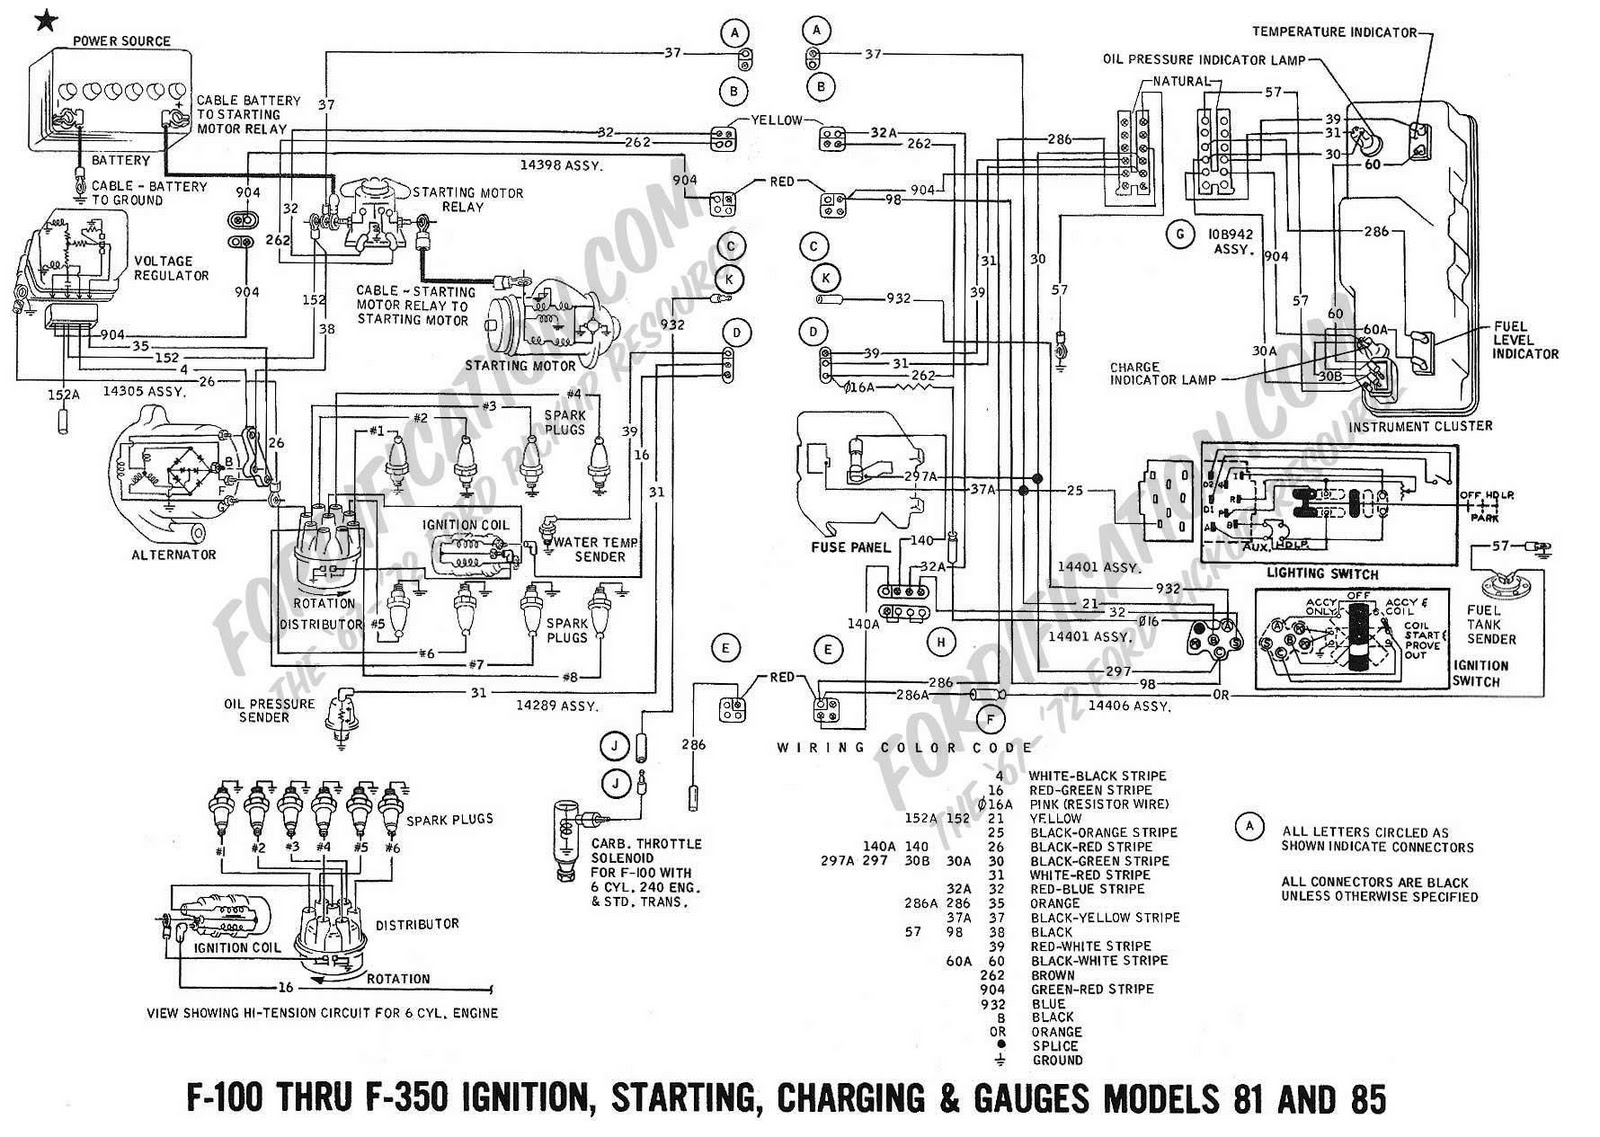 hight resolution of 76 ford ltd ignition wiring diagram wiring diagram todays ford truck alternator diagram 1974 ford ltd alternator wiring